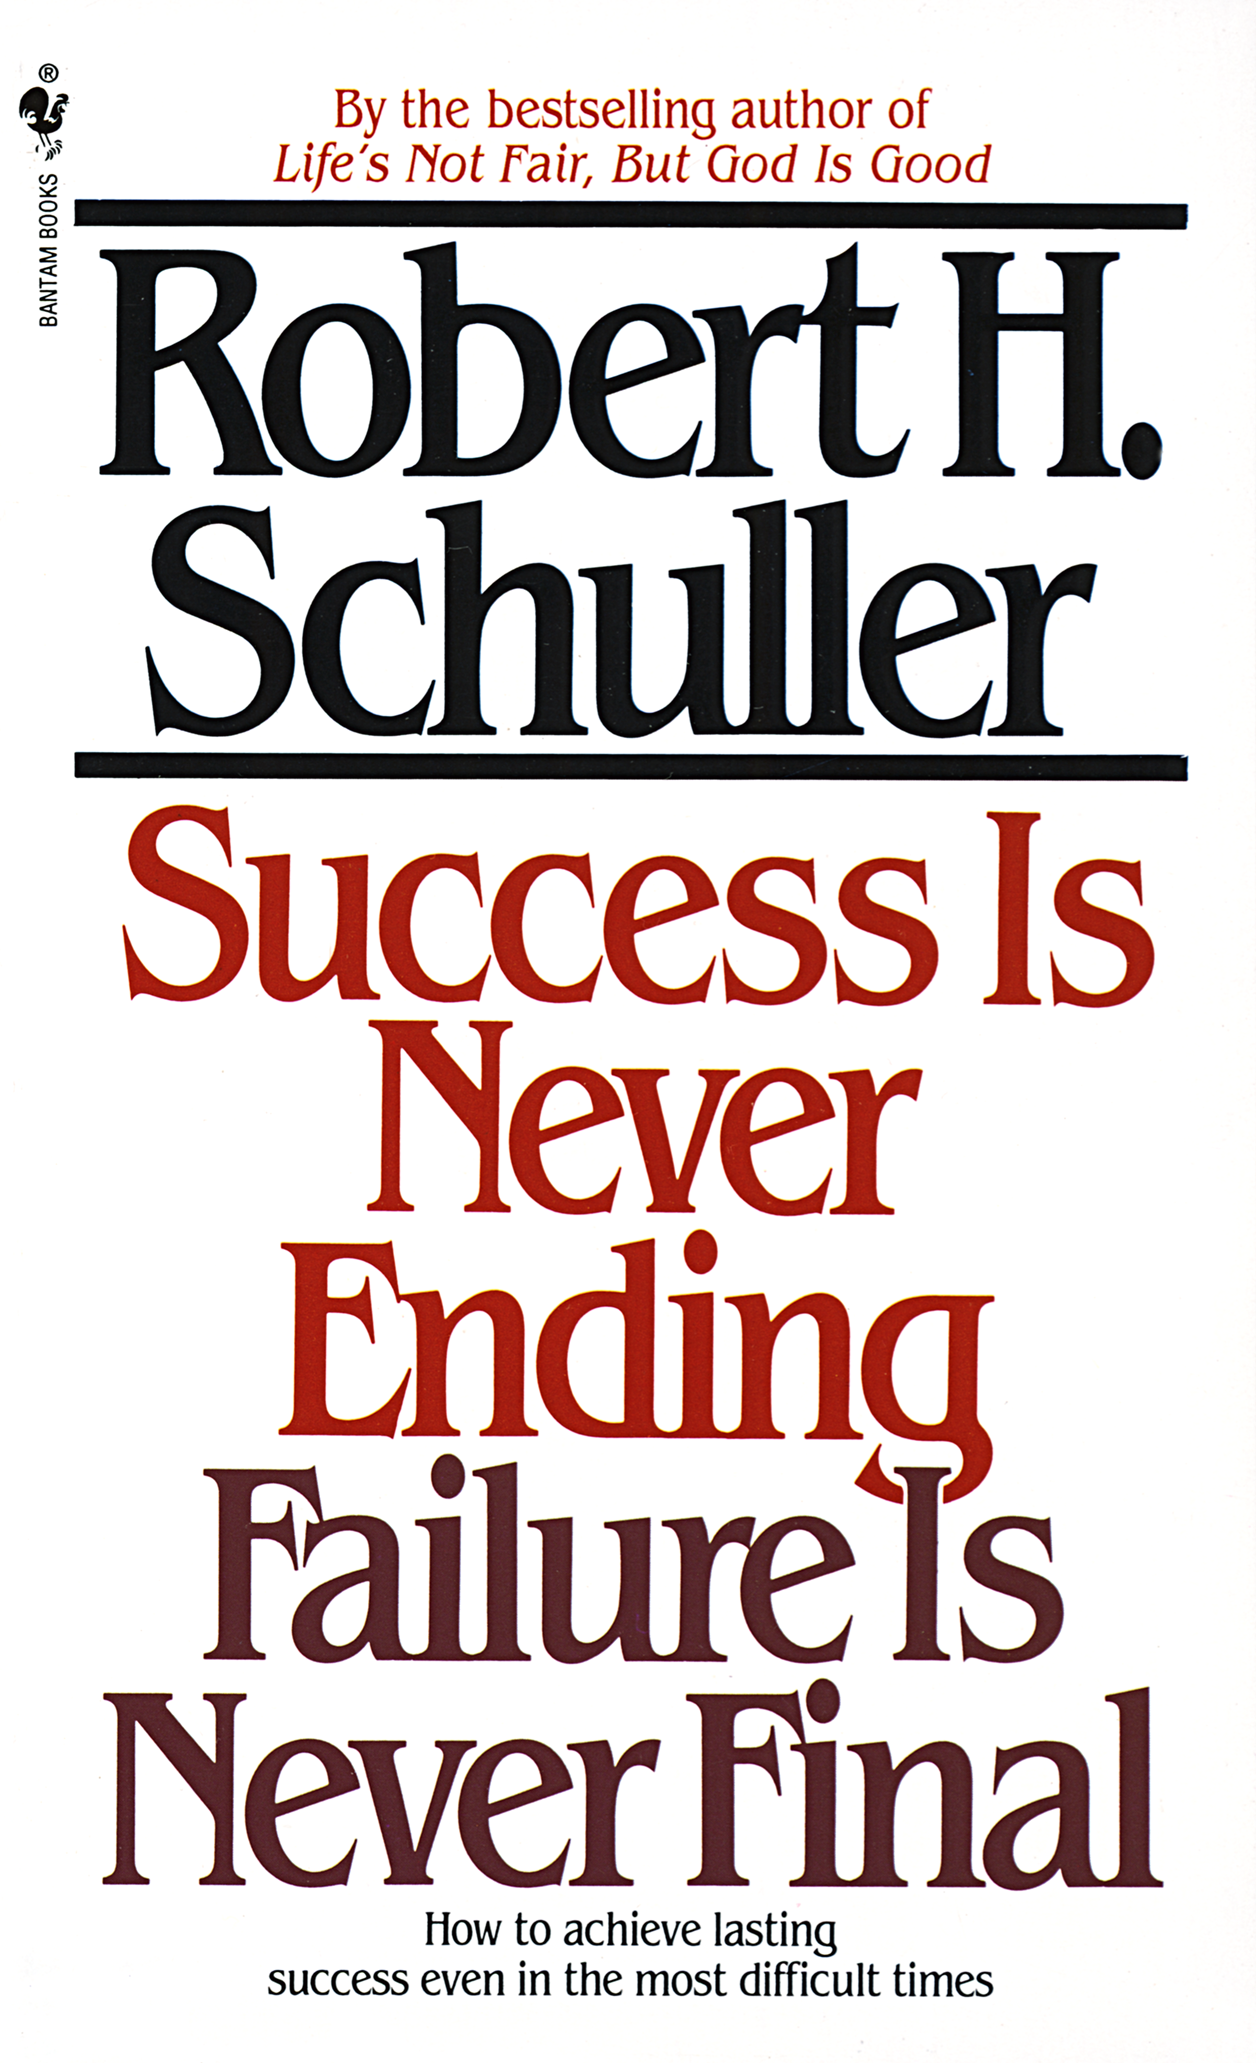 Success Is Never Ending, Failure Is Never Final  by Robert Schuller